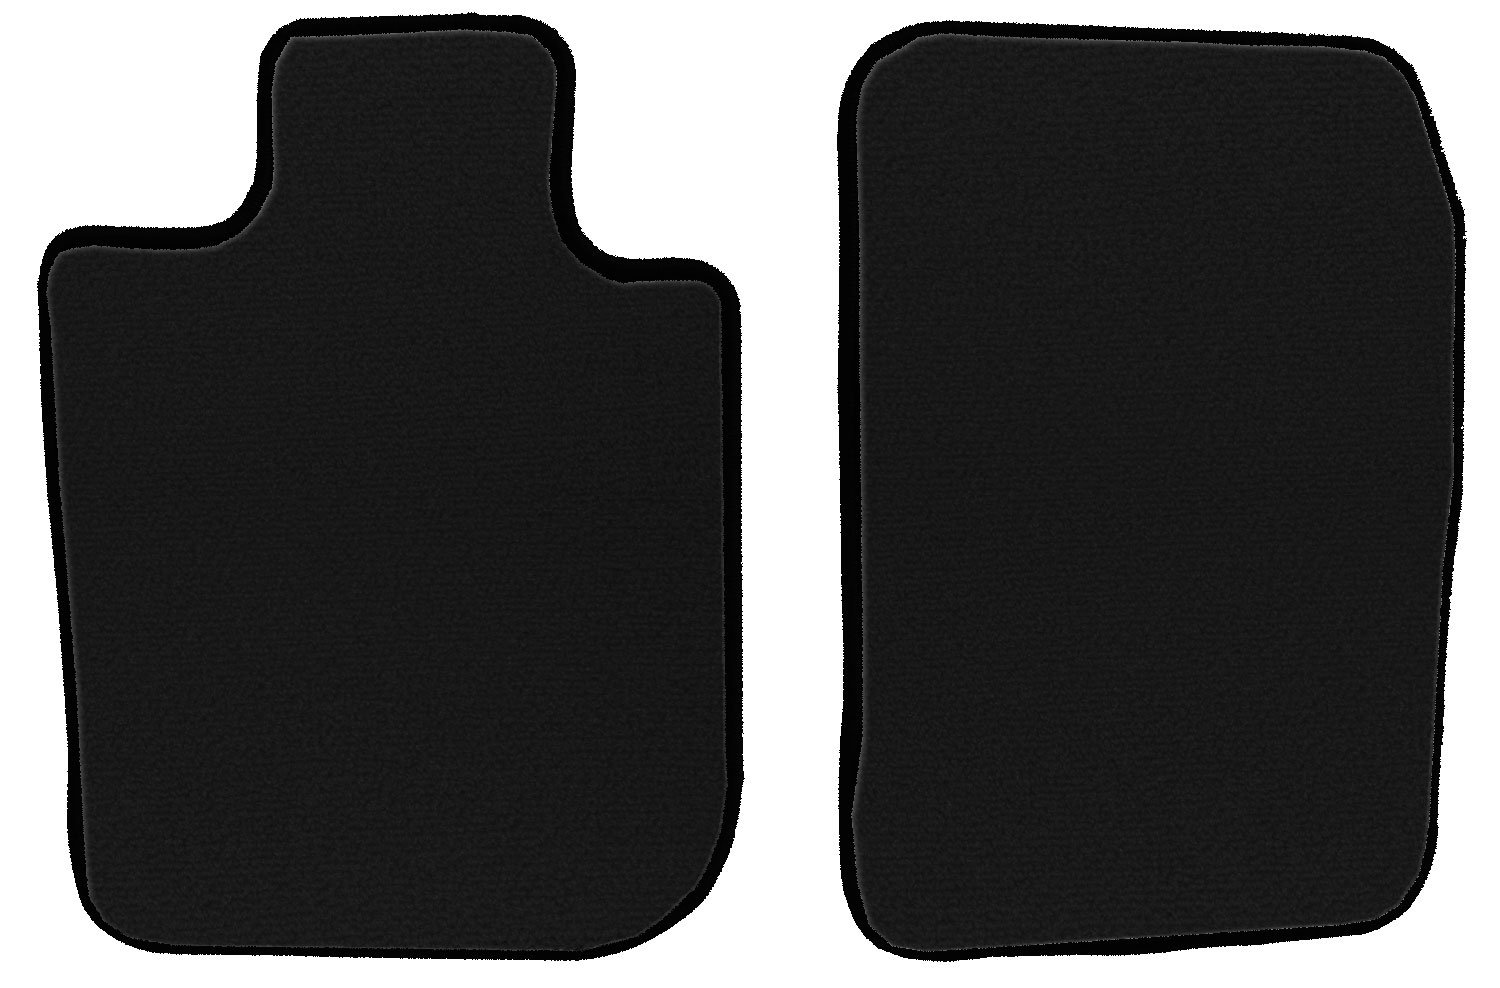 2013 2016 GGBAILEY BMW 6 Series 2012 2017 Black Loop Driver /& Passenger Floor Mats 2014 2015